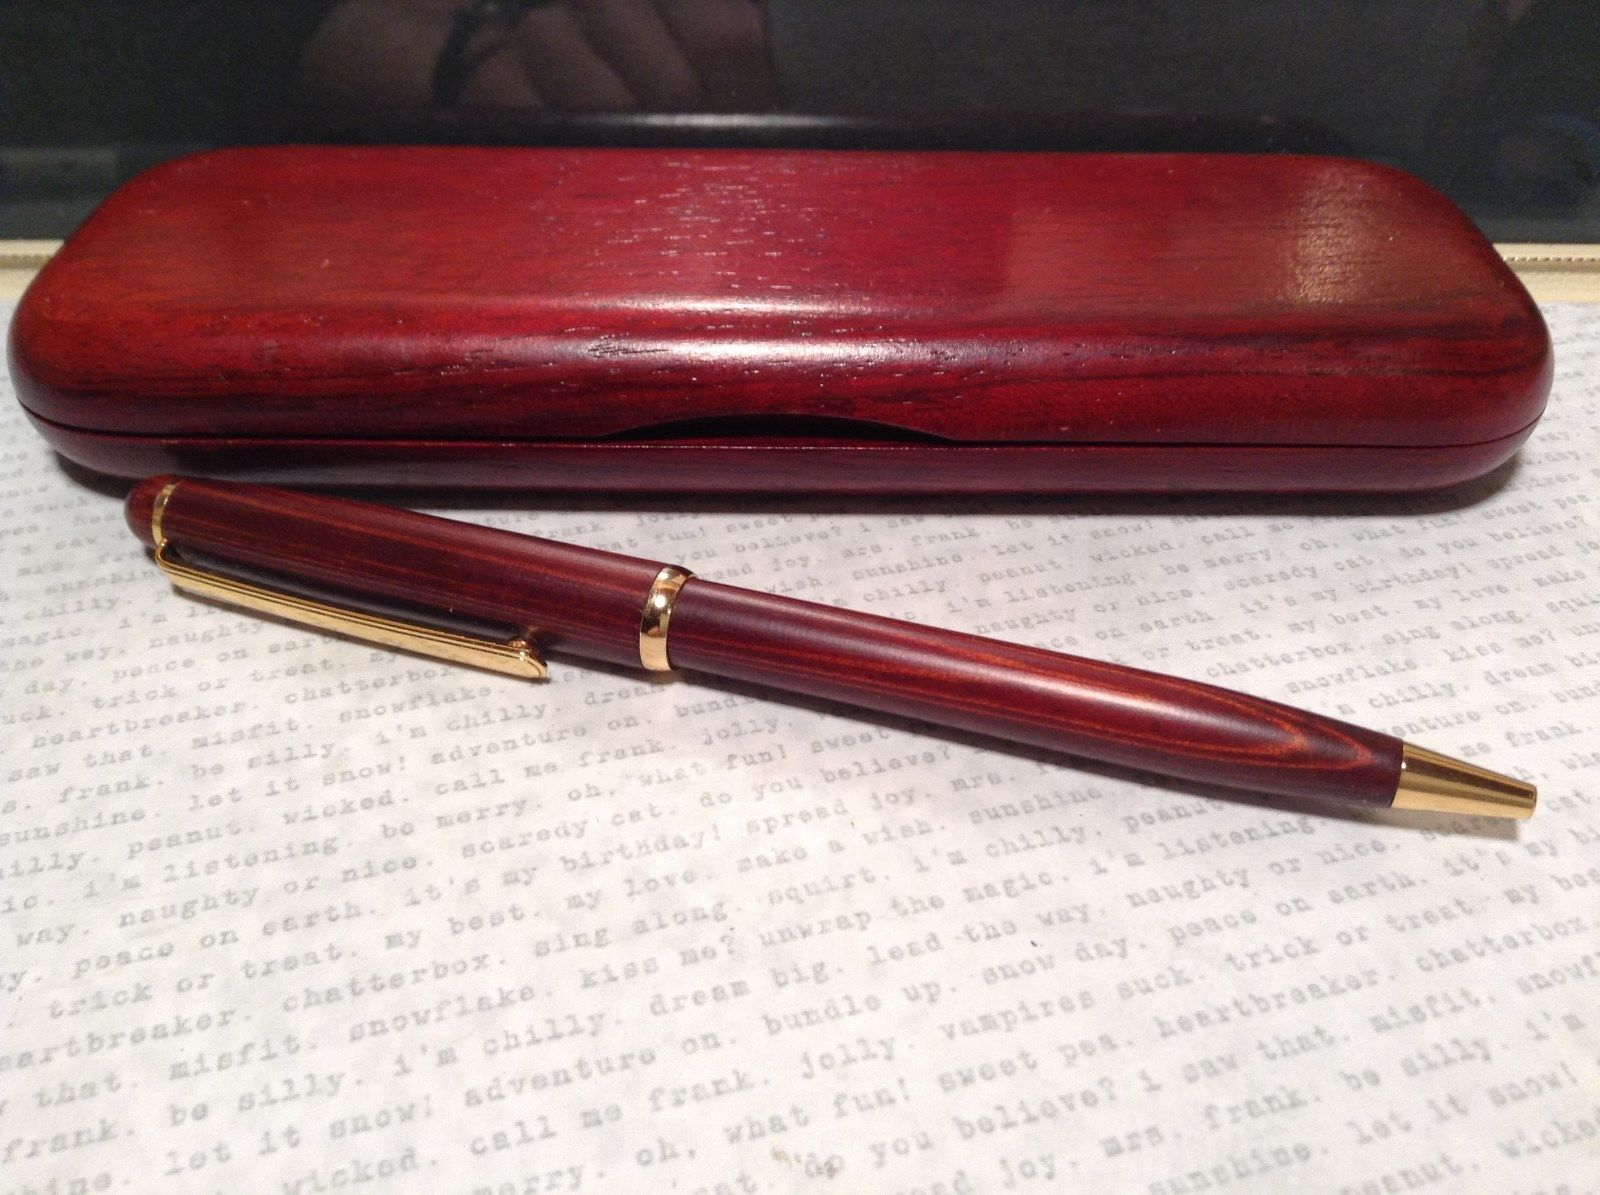 Beautiful Wooden Red Rosewood Pen with Stained Wood Red Case Golden Accents